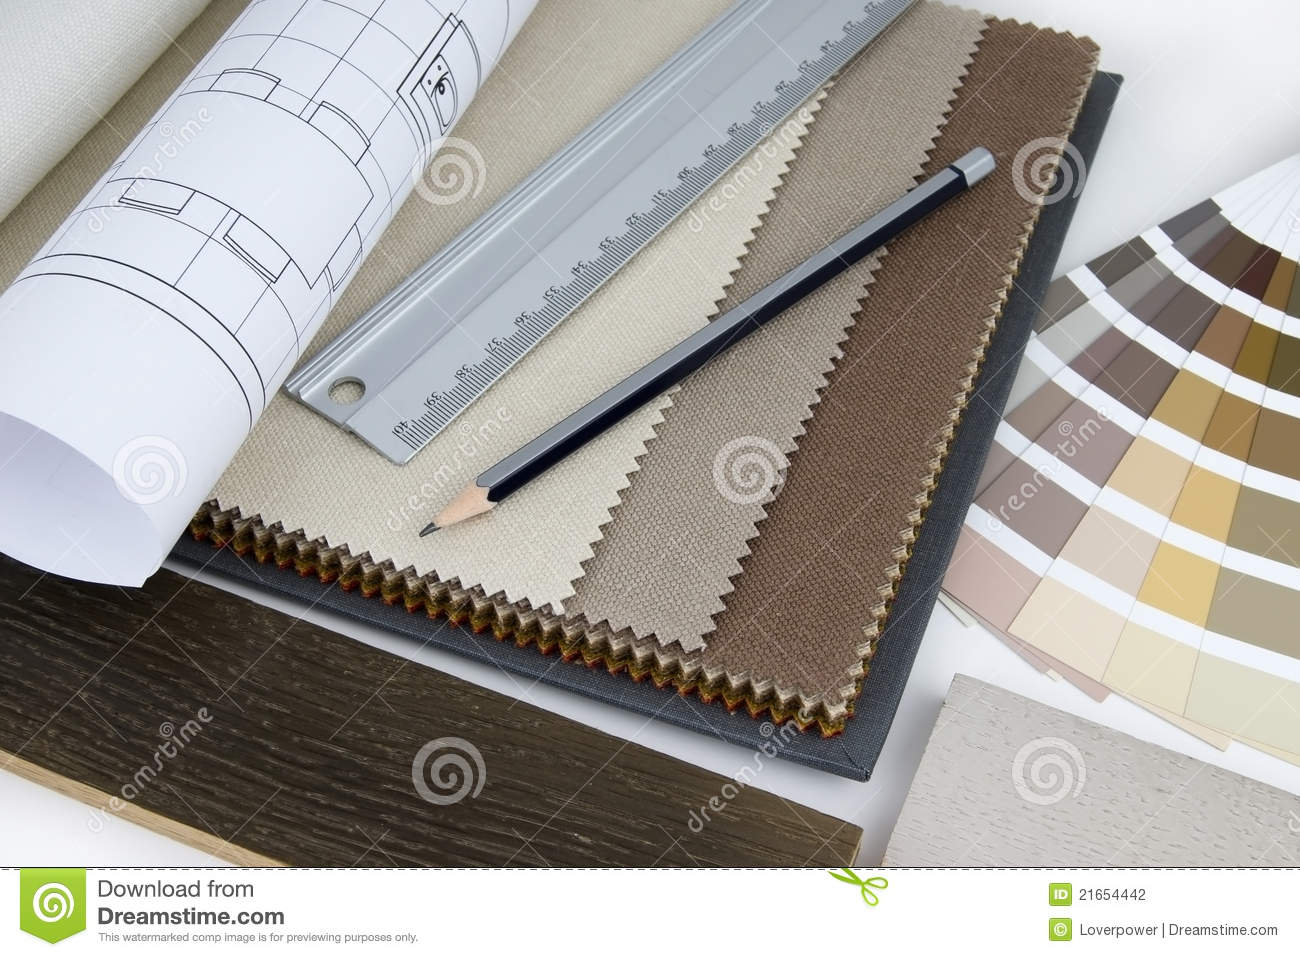 Interior Designers At Work interior design worktable stock photography - image: 21654442